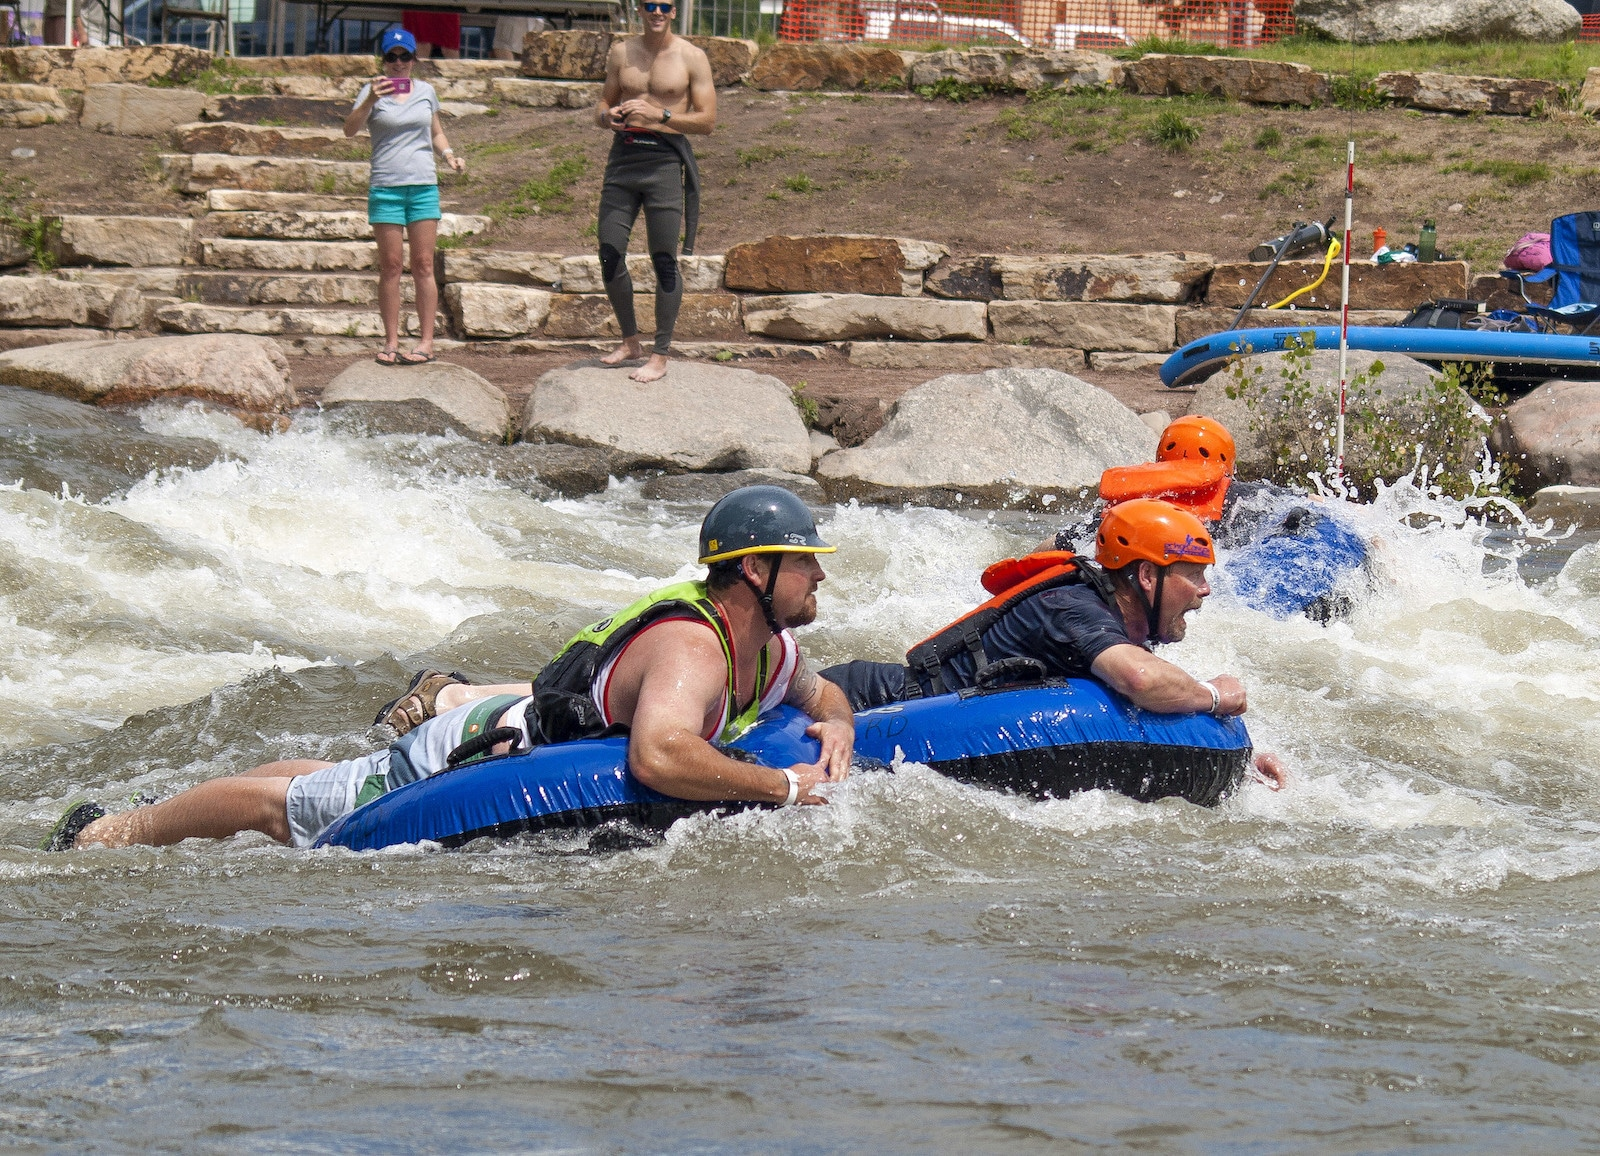 Image of tubers at the Royal Gorge Whitewater Festival in Canon City, CO